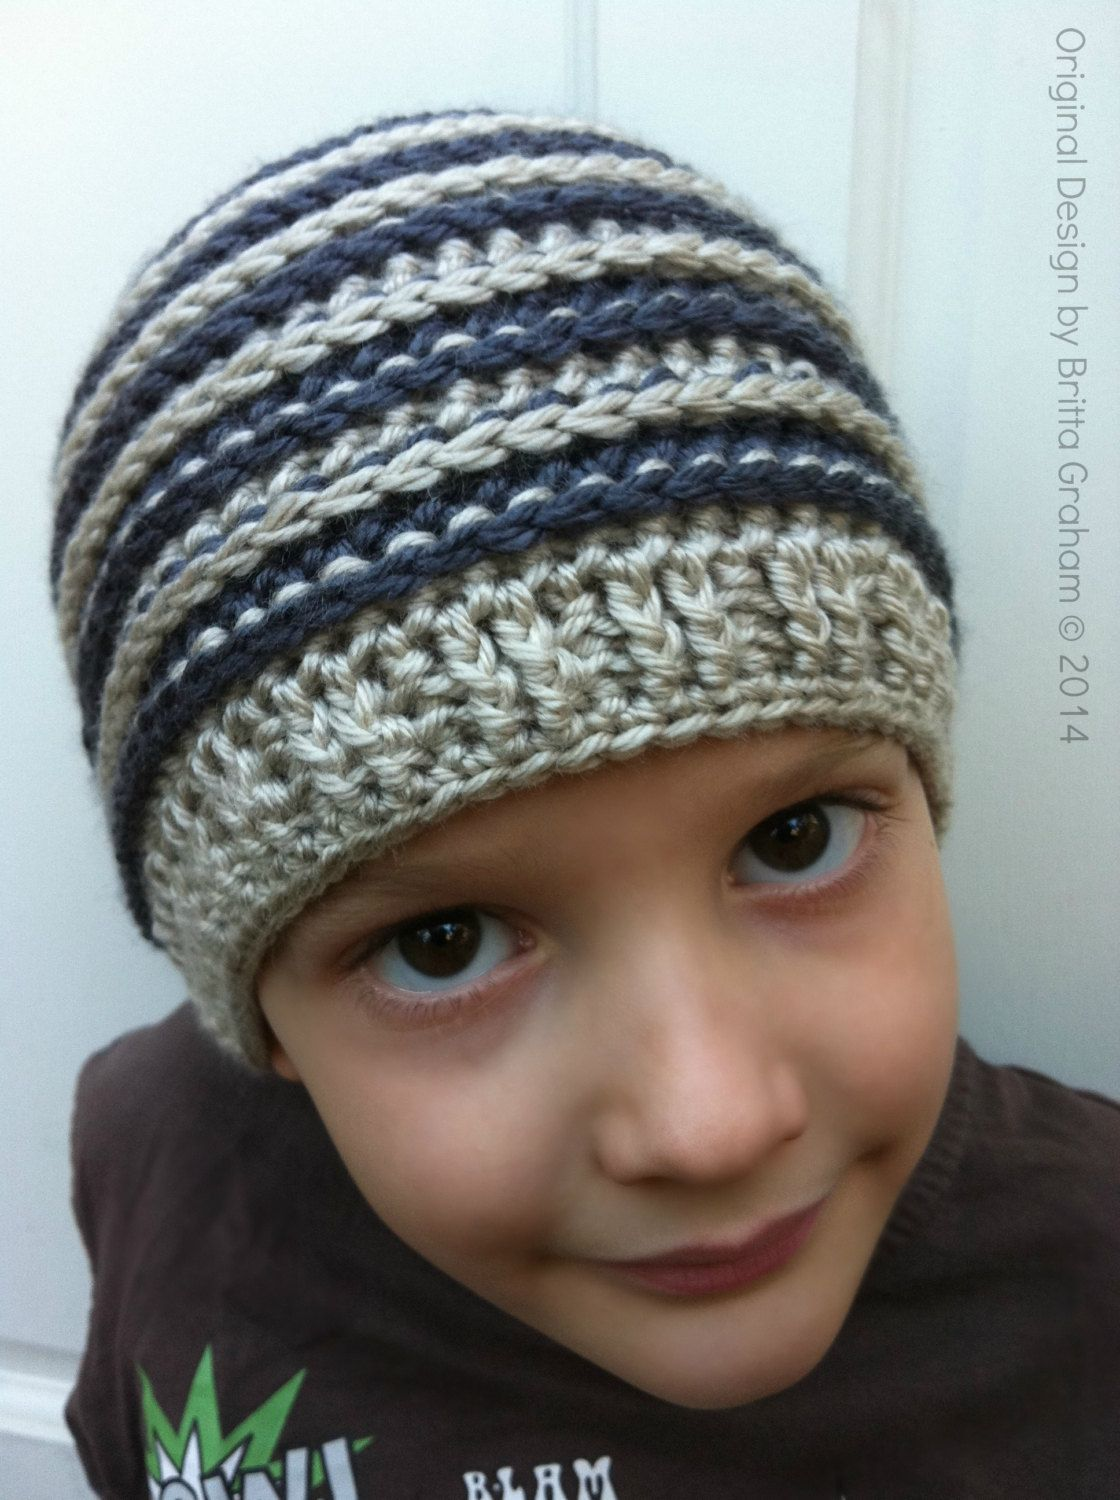 Unisex crochet hat pattern - Ribbed Beanie P306 using DK weight (US    Light 3 AUS   8ply) yarn 69d9eab4d7c